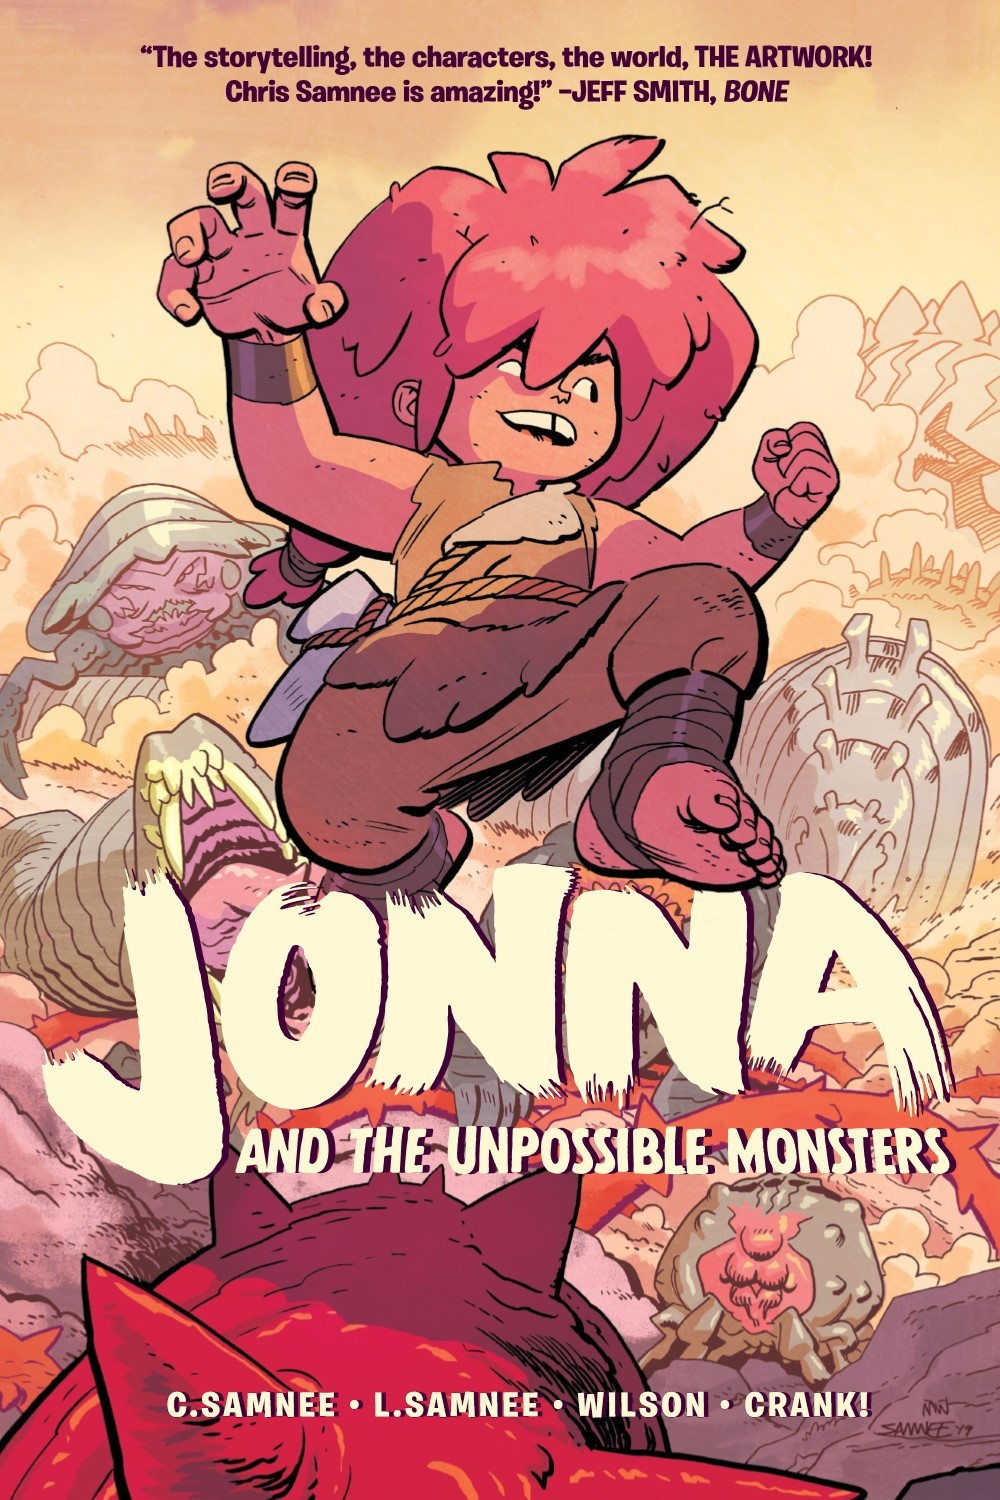 JONNA-V1-REFERENCE-001 ComicList Previews: JONNA AND THE UNPOSSIBLE MONSTER VOLUME 1 TP